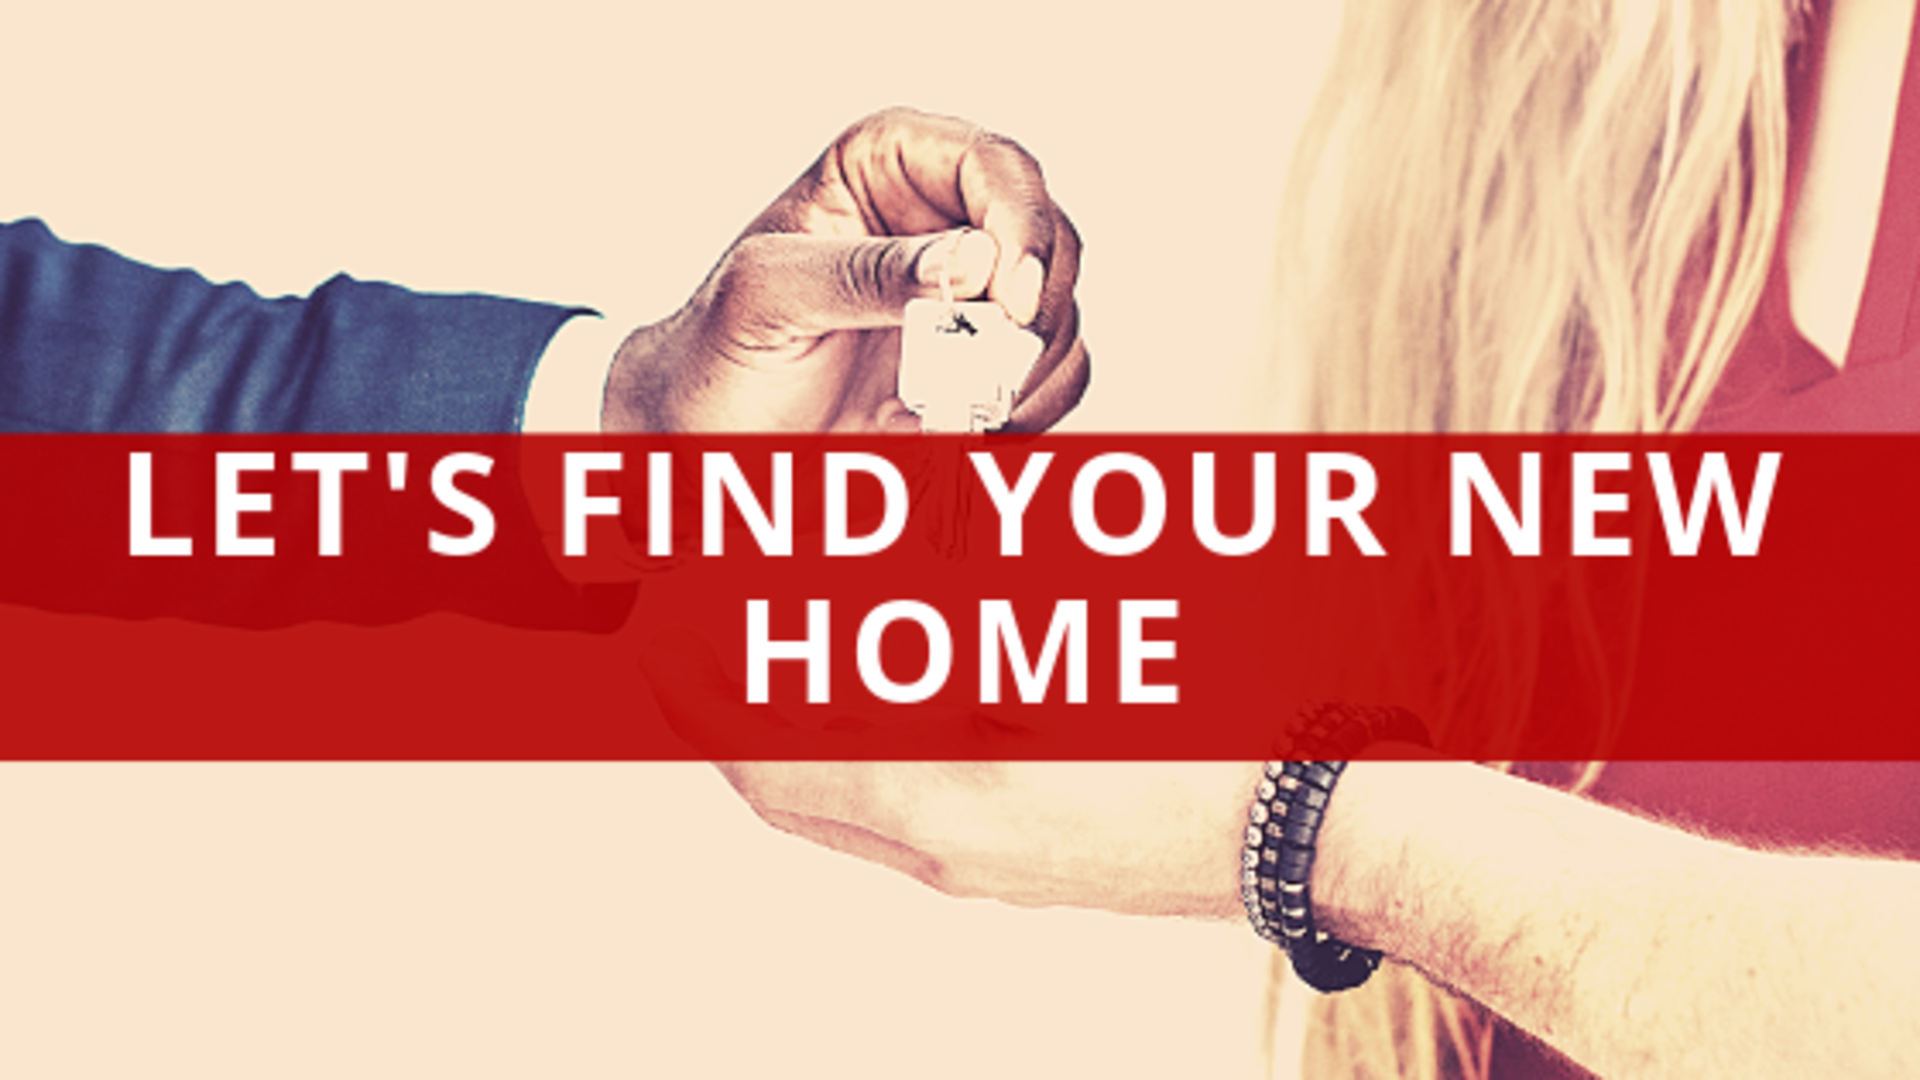 Let's Find Your New Home